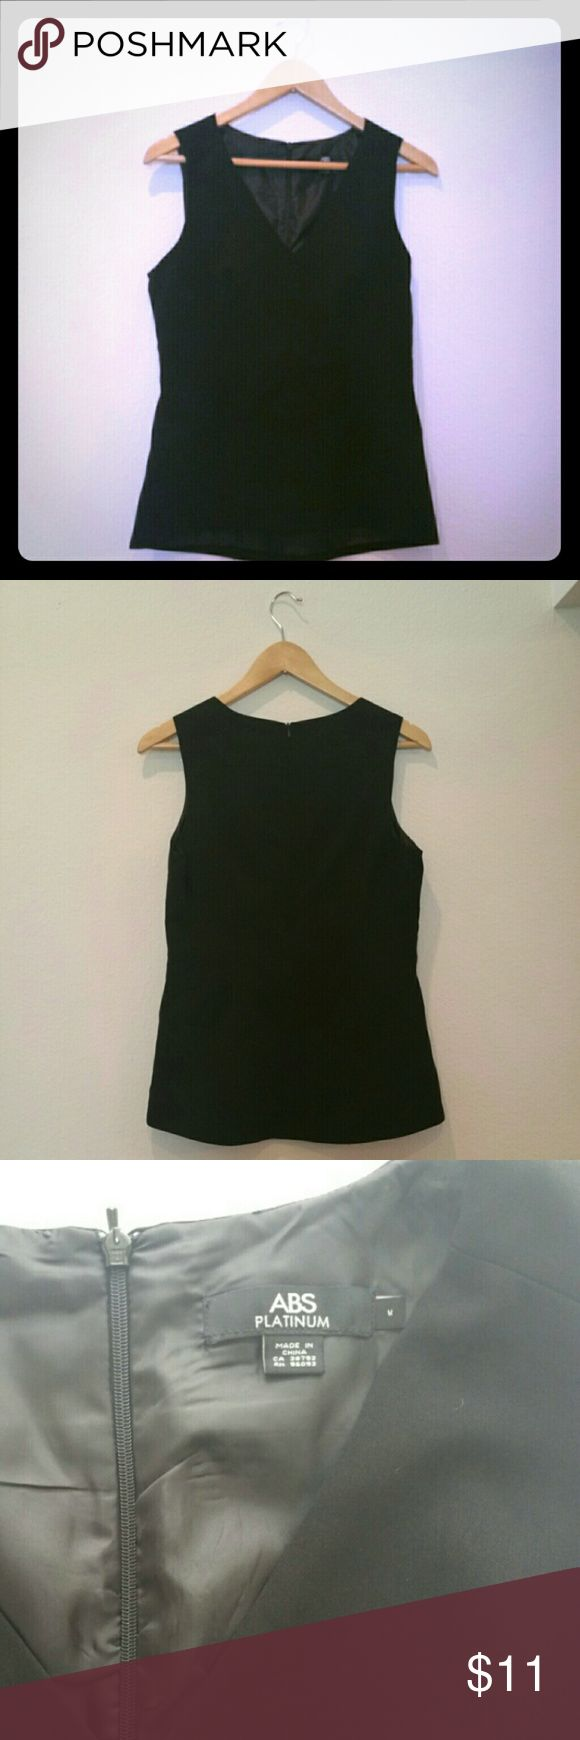 "ABS Platinum Black Peplum Top Sleeveless V-neck fully lined top. Slight hi-lo feature. 19"" bust, 25"" length. Abs Platinum Tops Blouses"